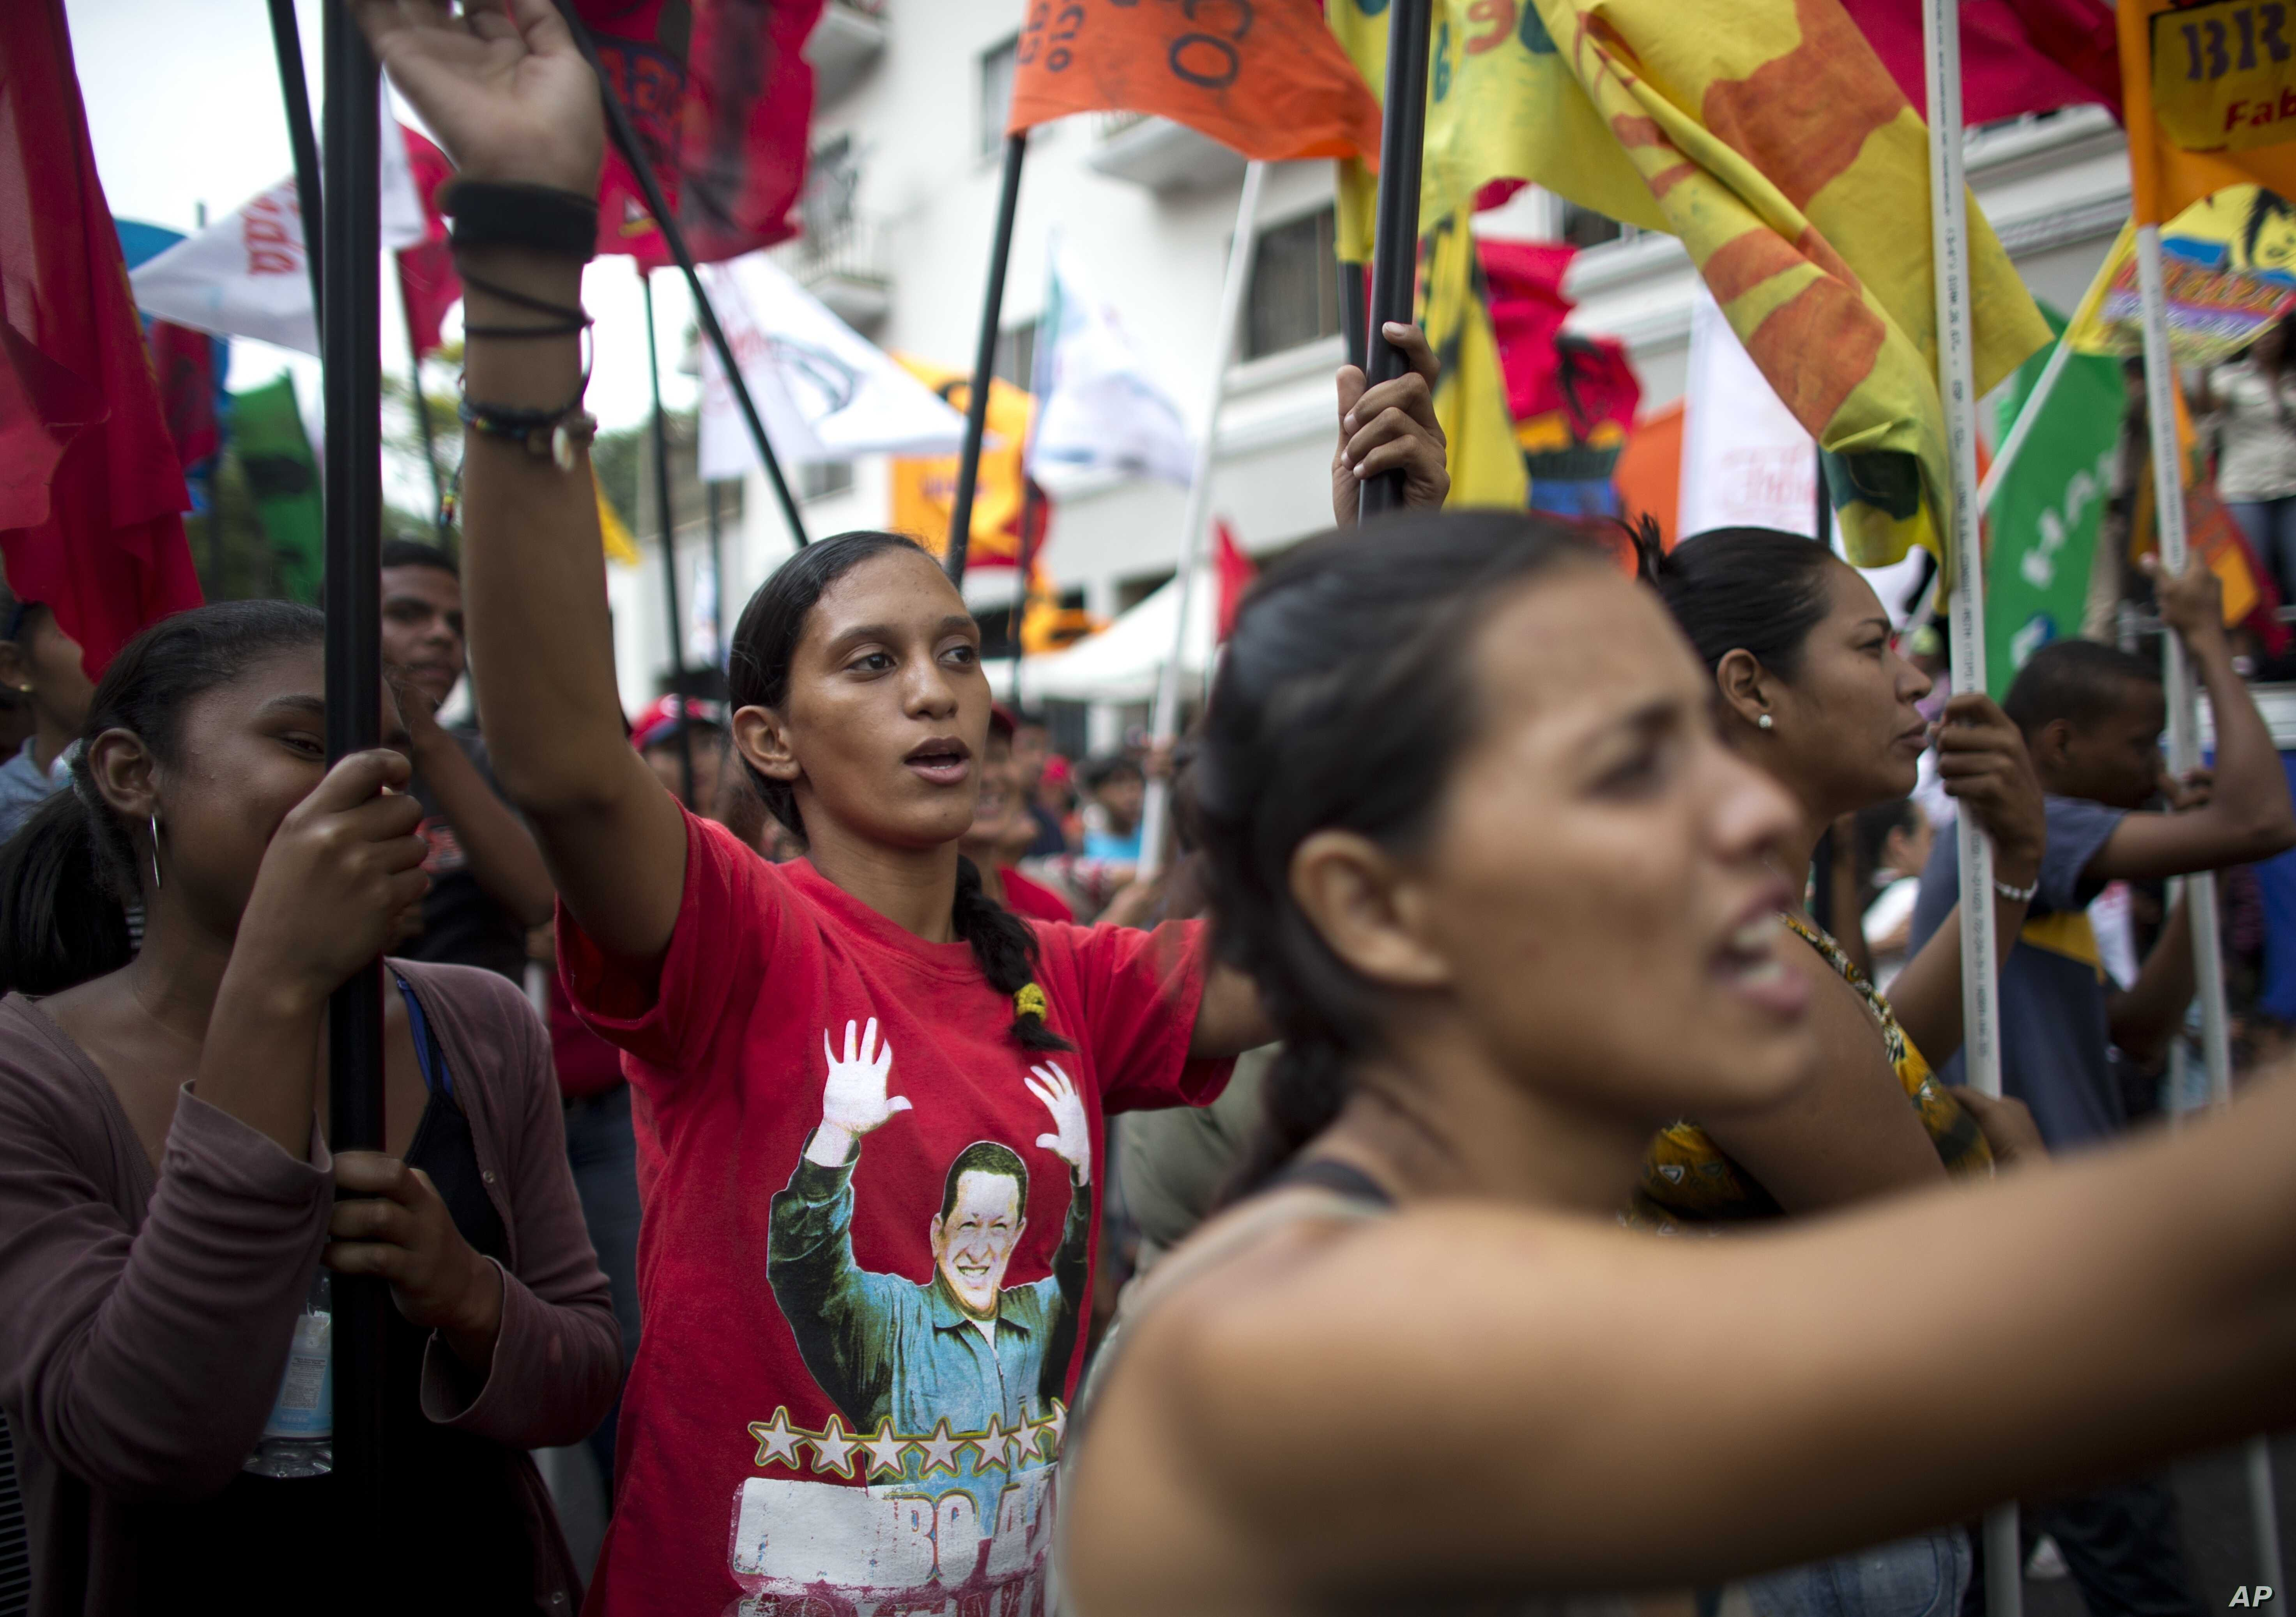 Government supporters march during an anti-imperialist rally in Caracas, Venezuela, Saturday, March 30, 2019.